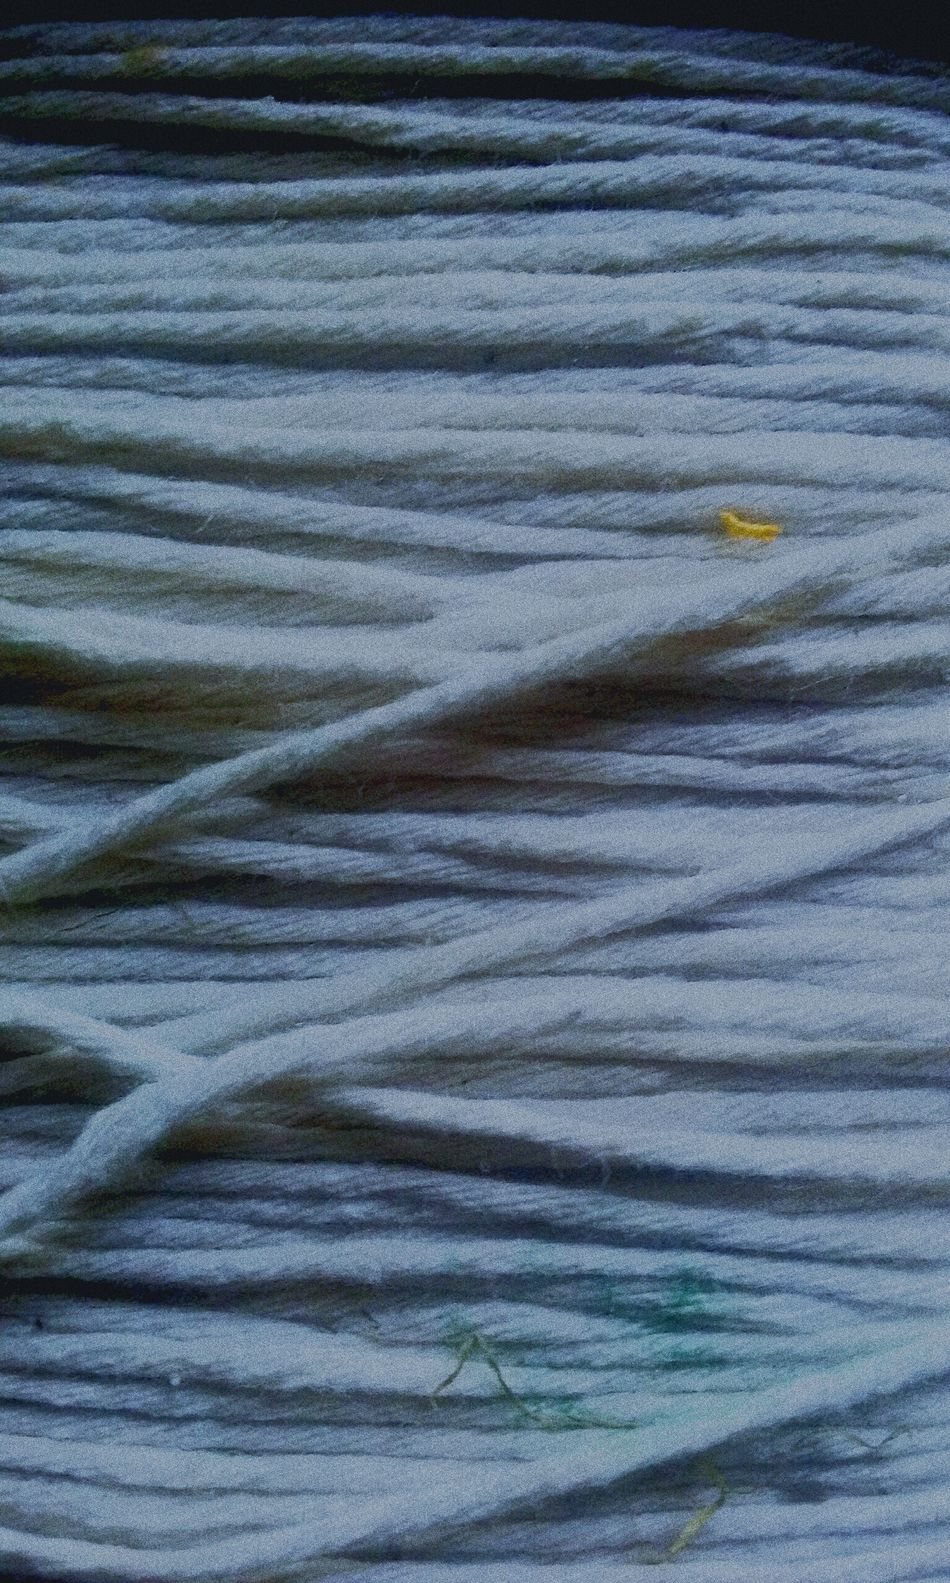 Backgrounds Close-up Repetition Freshness Day Outdoors Twine, Cord, Yarn, Thread, Strand, String